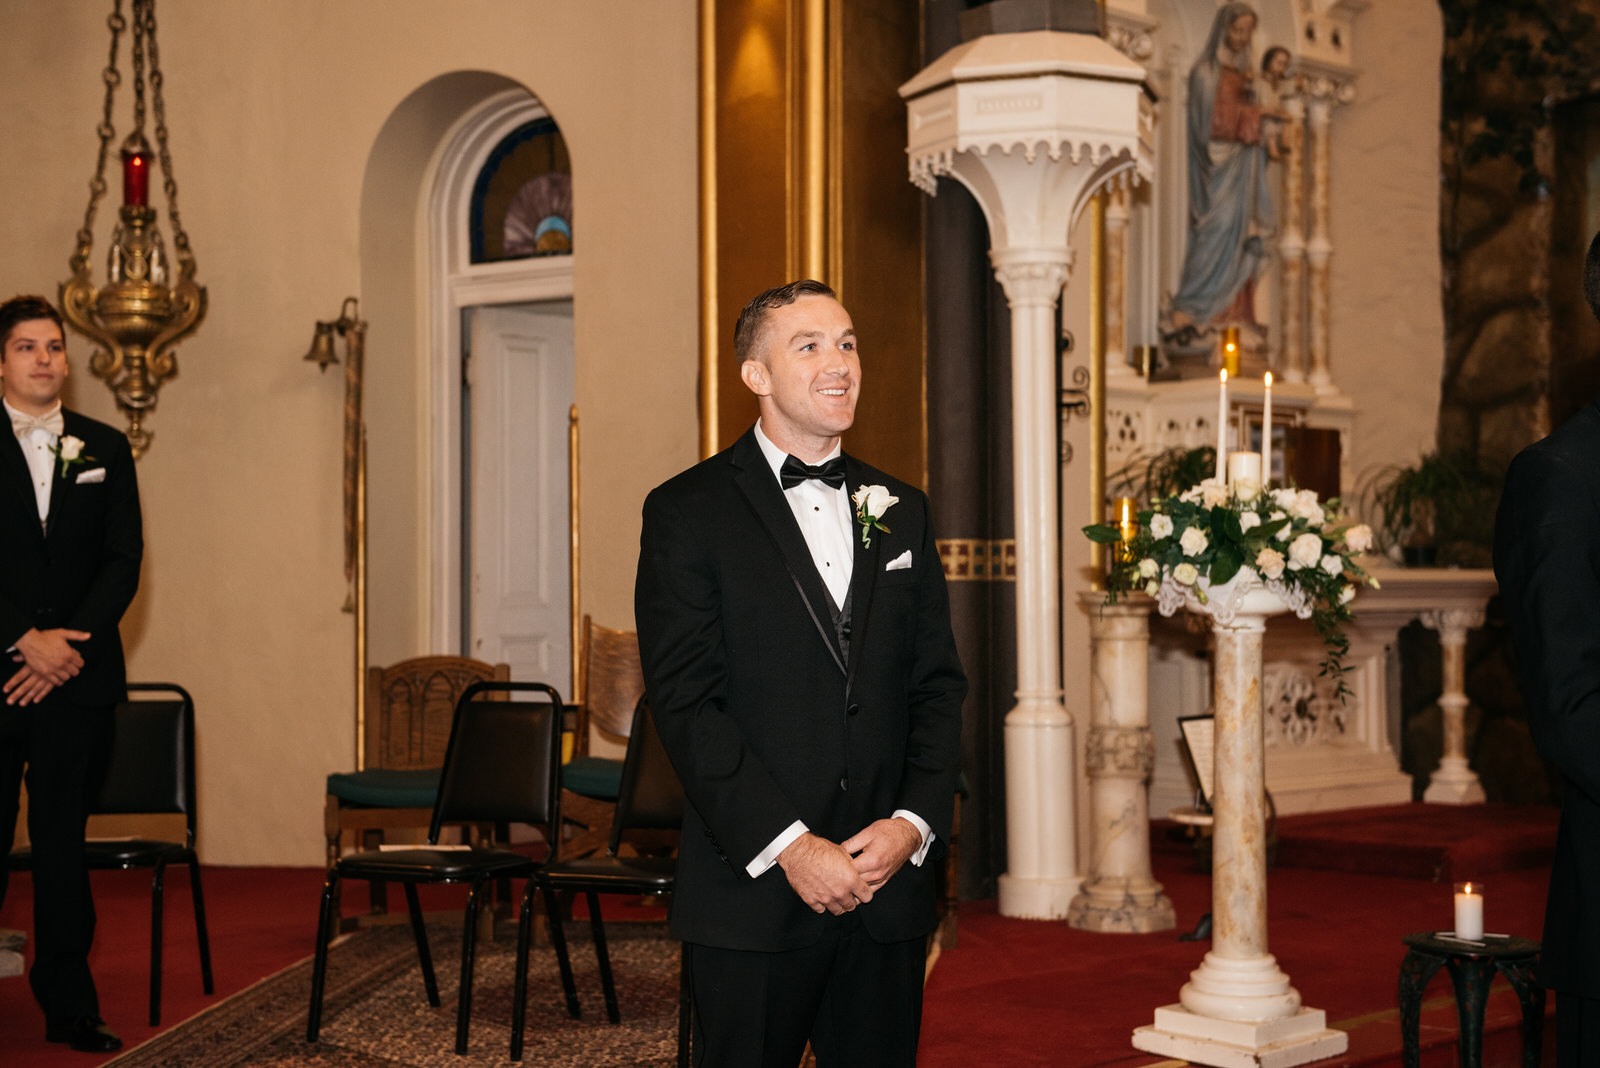 hilton_garden_inn_southpointe_pittsburgh_weddings_35.jpg